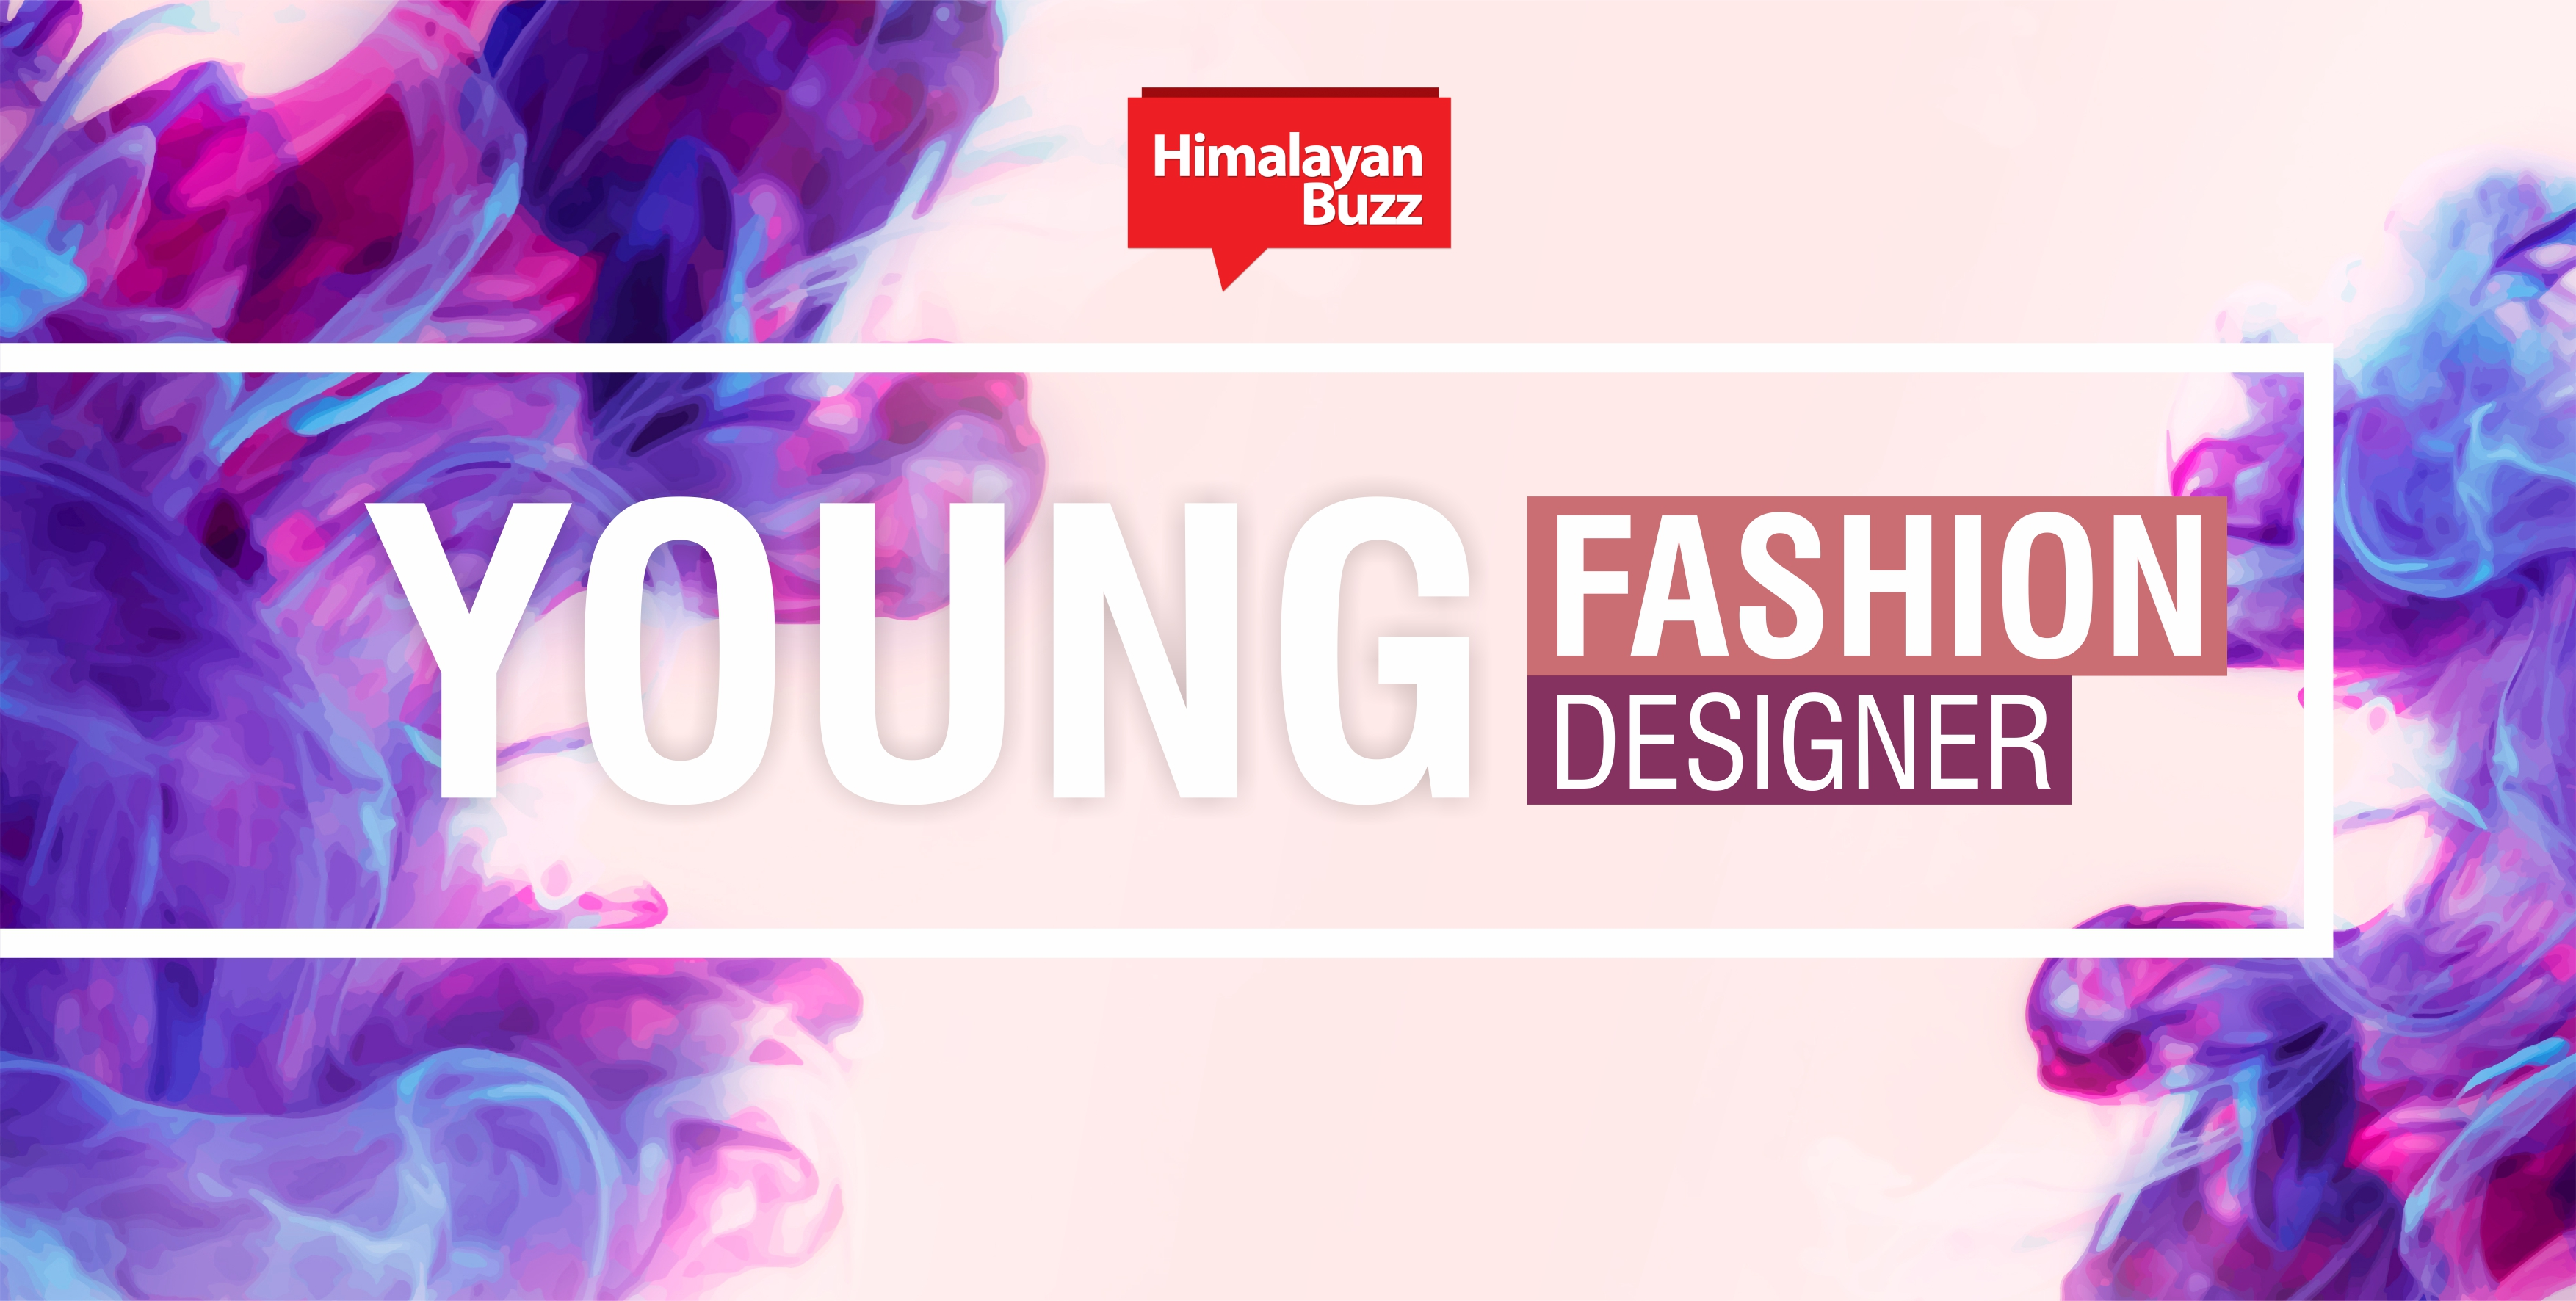 Young Fashion Designer 2019 Online Application Form Himalayan Buzz